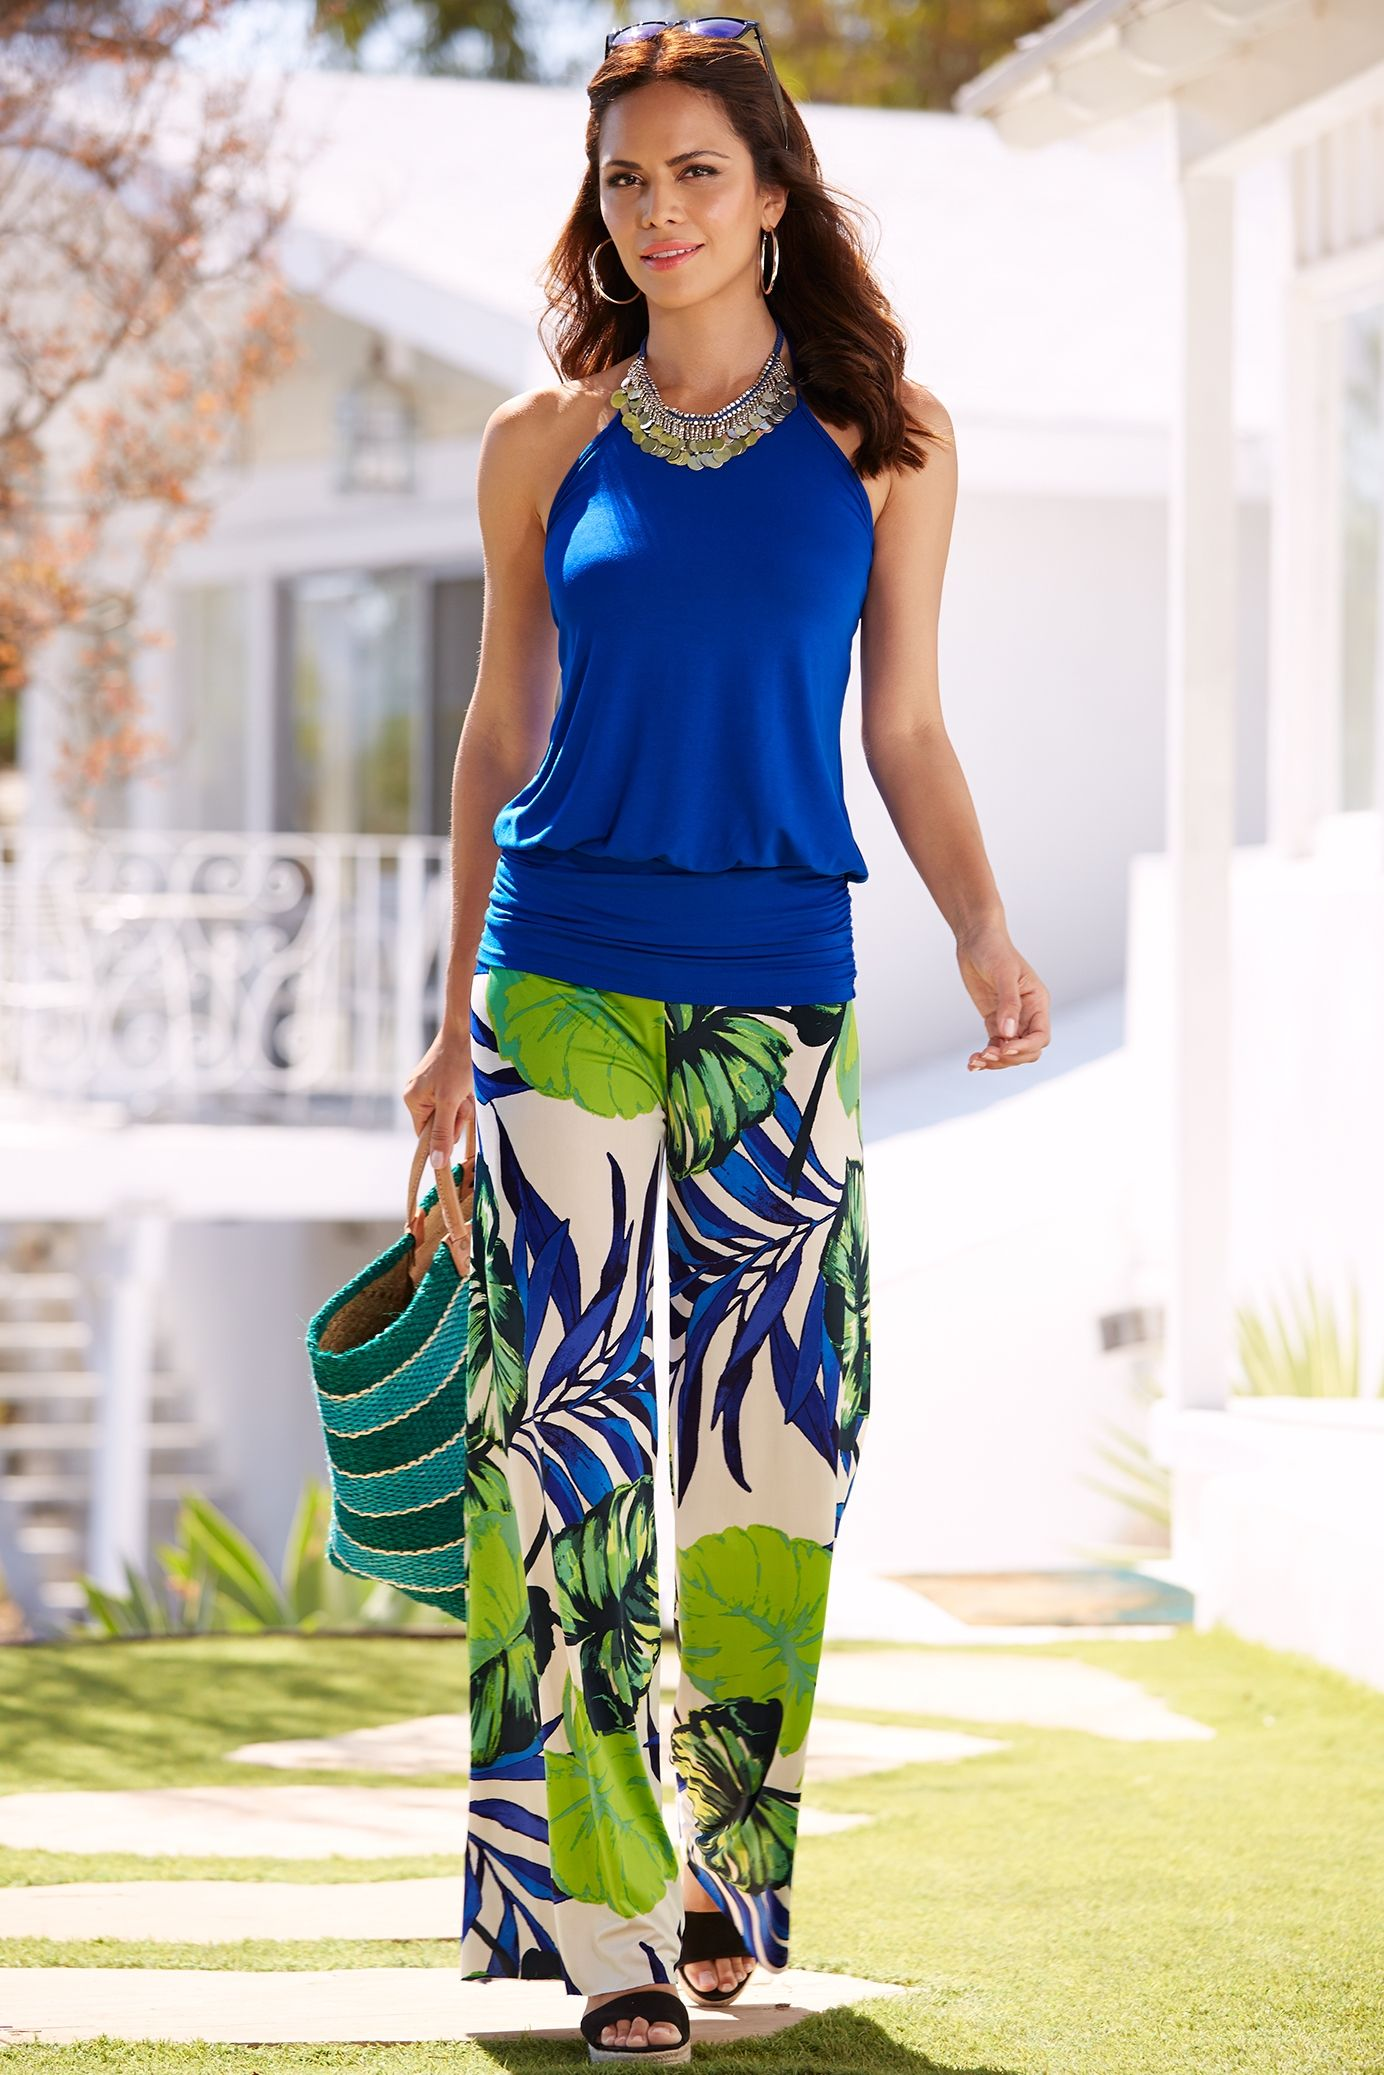 Fashion style Tropical ootd printed palazzo top trends for woman